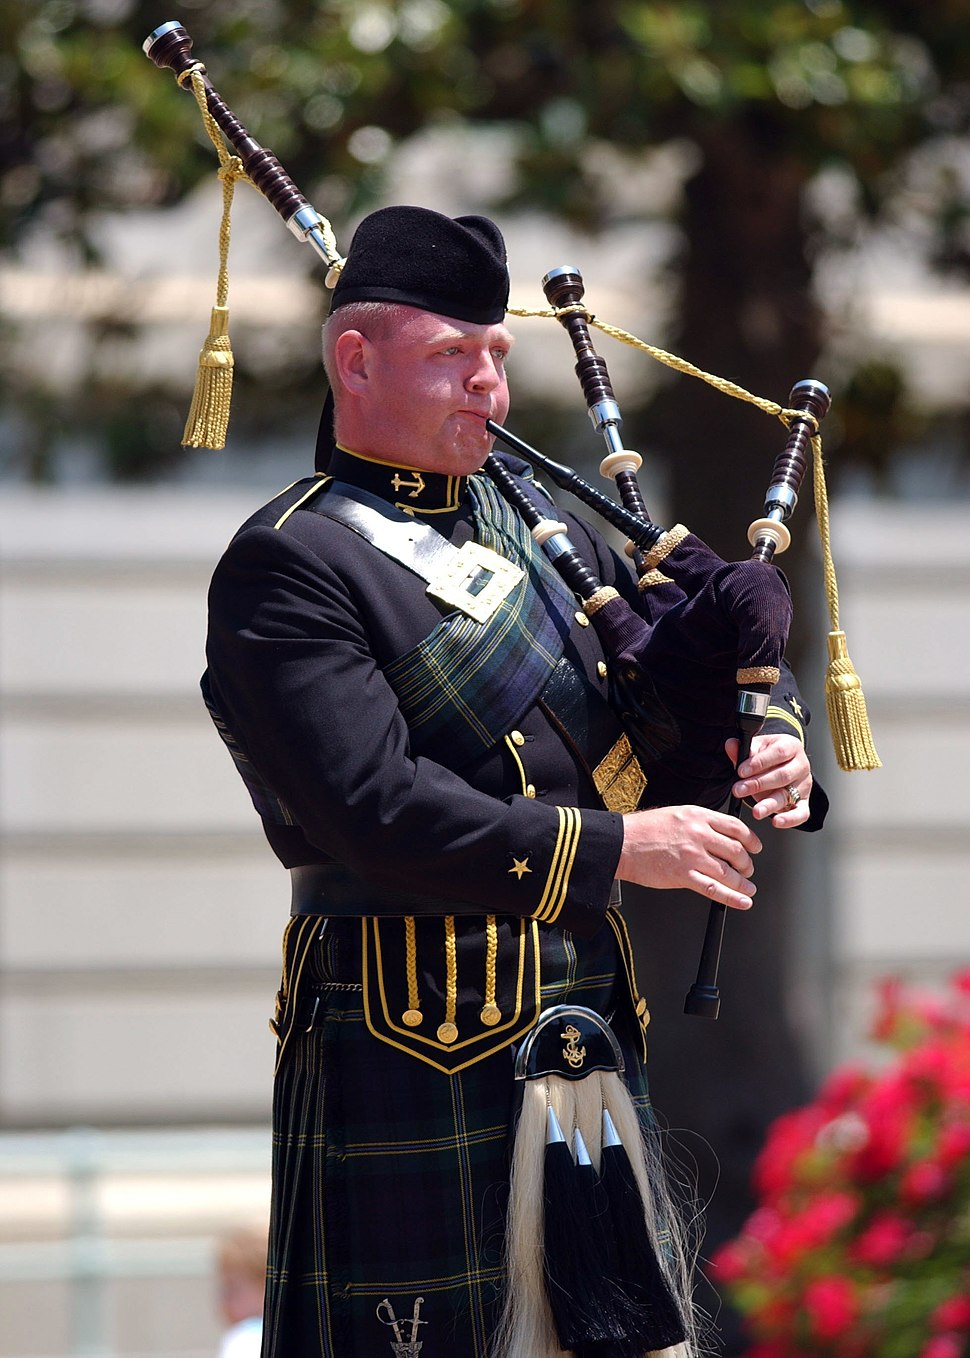 US Naval Academy Pipes and Drums bagpiper